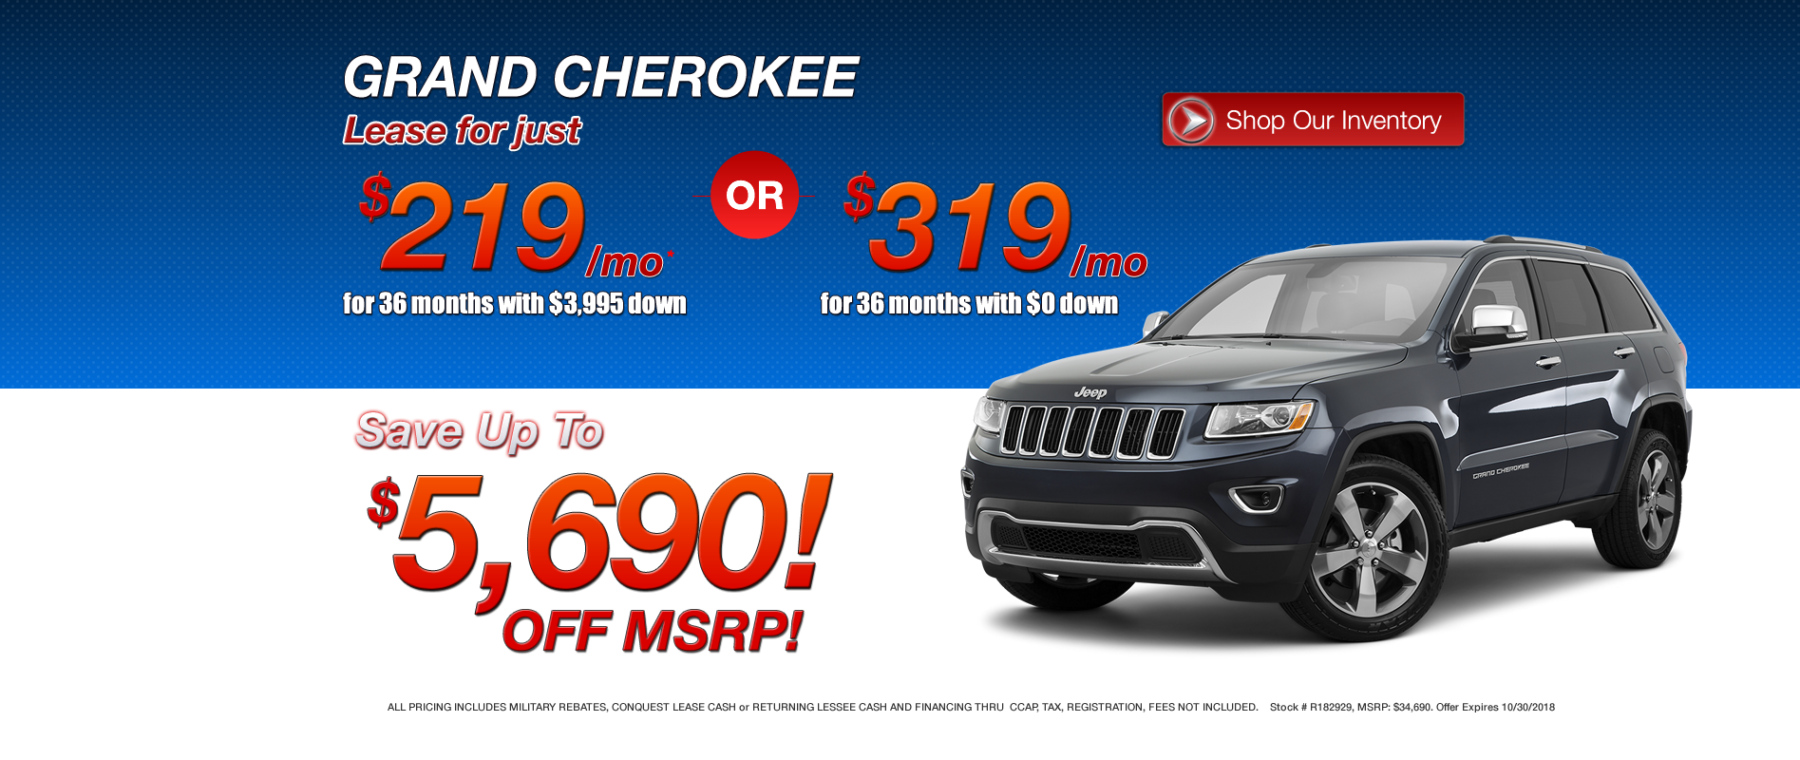 Best Grand Cherokee Lease Deals in MA